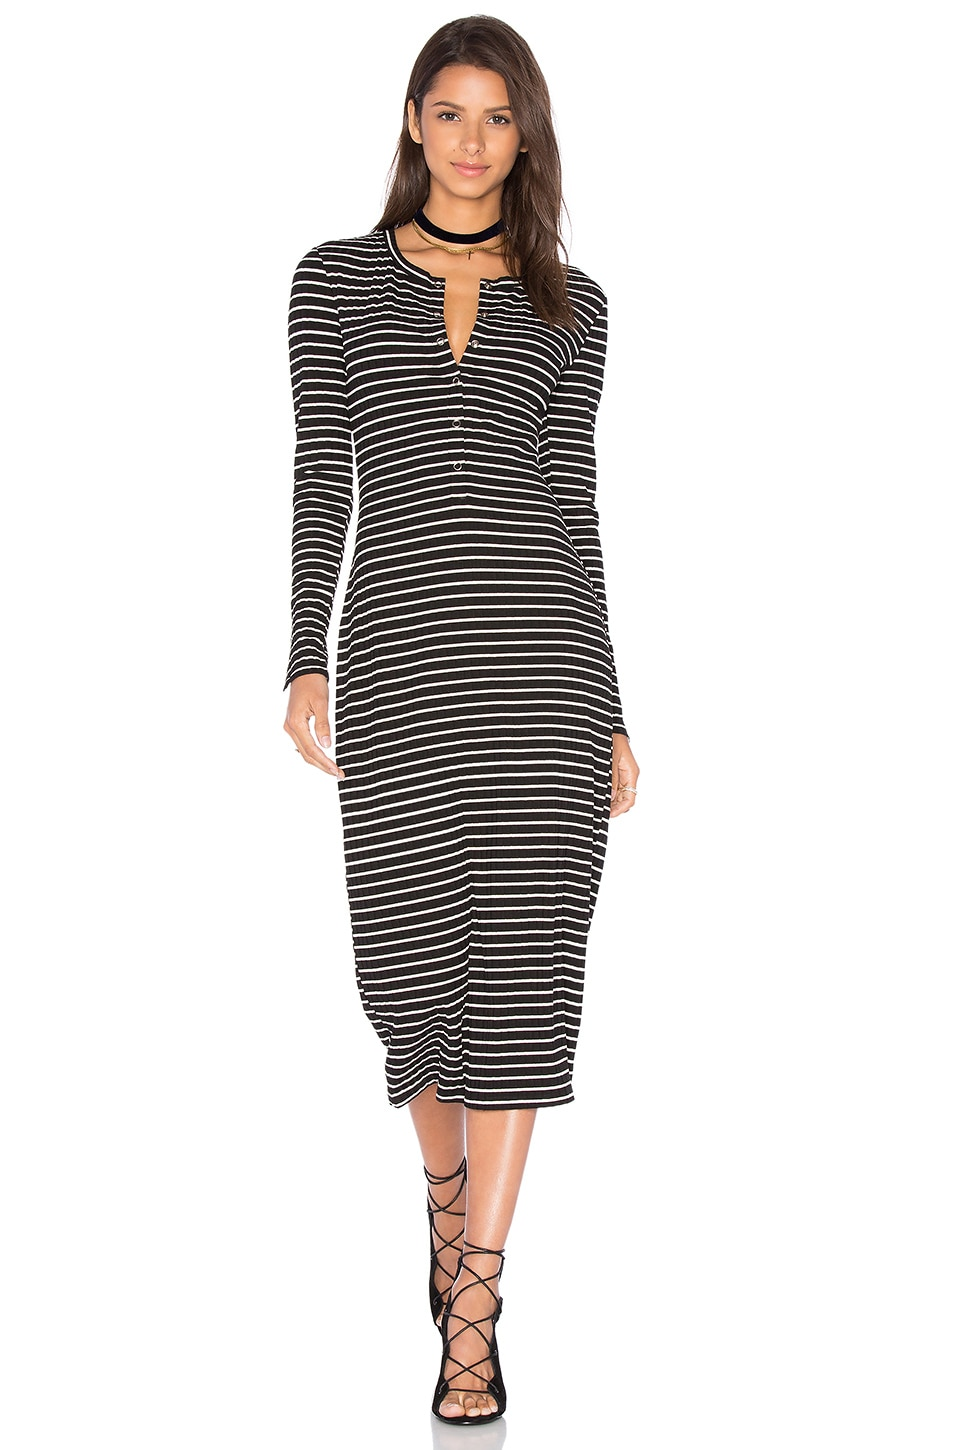 Privacy Please Bolton Dress in Black Stripe